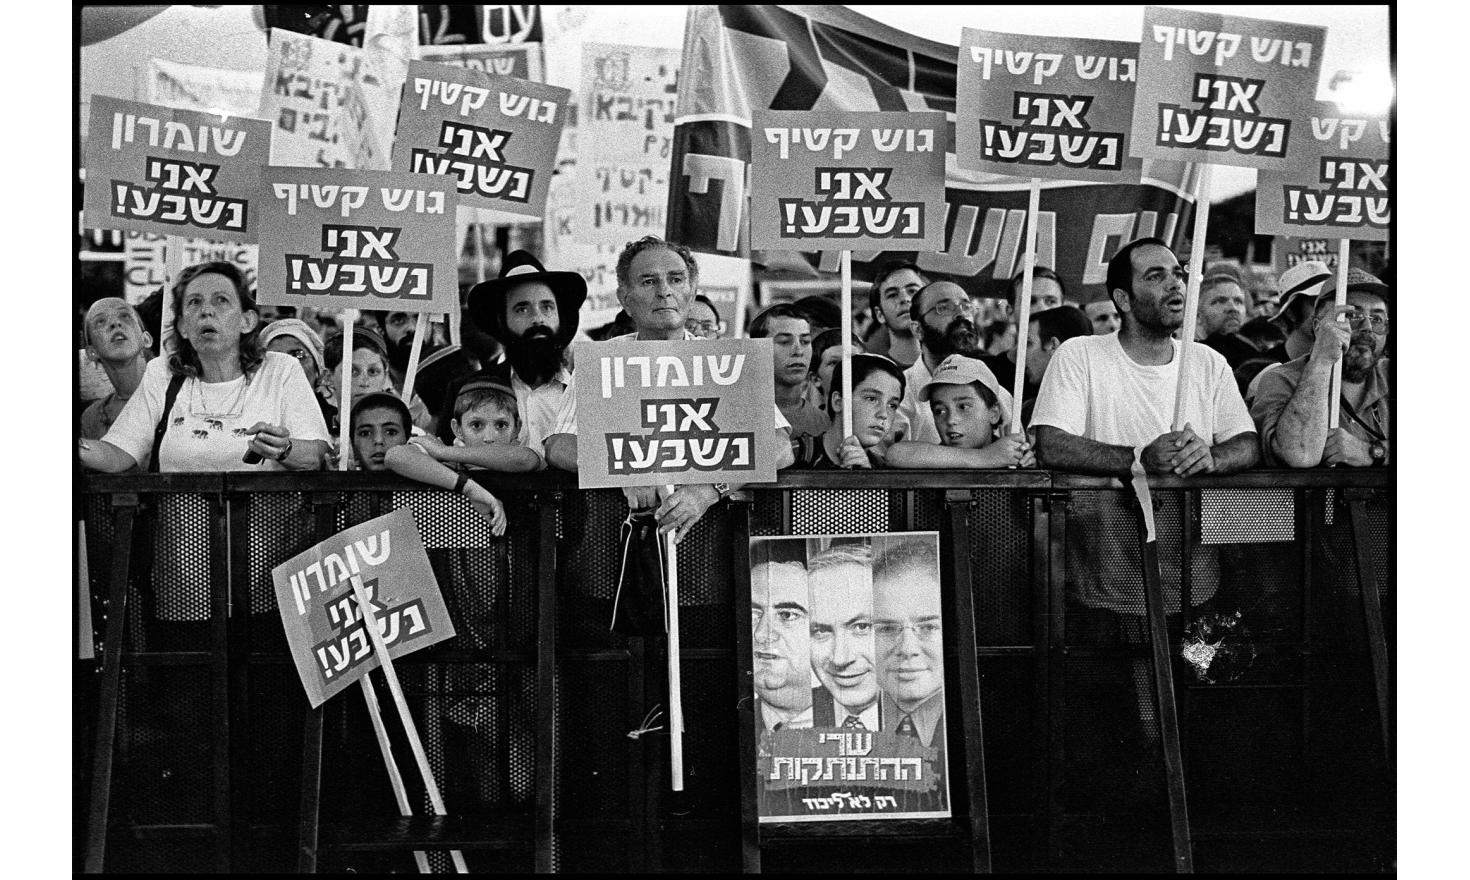 limited success of the latest anti-disengagement protest. Opponents of the withdrawal know they have lost the battle. Tel Aviv, Israel. August 2008.